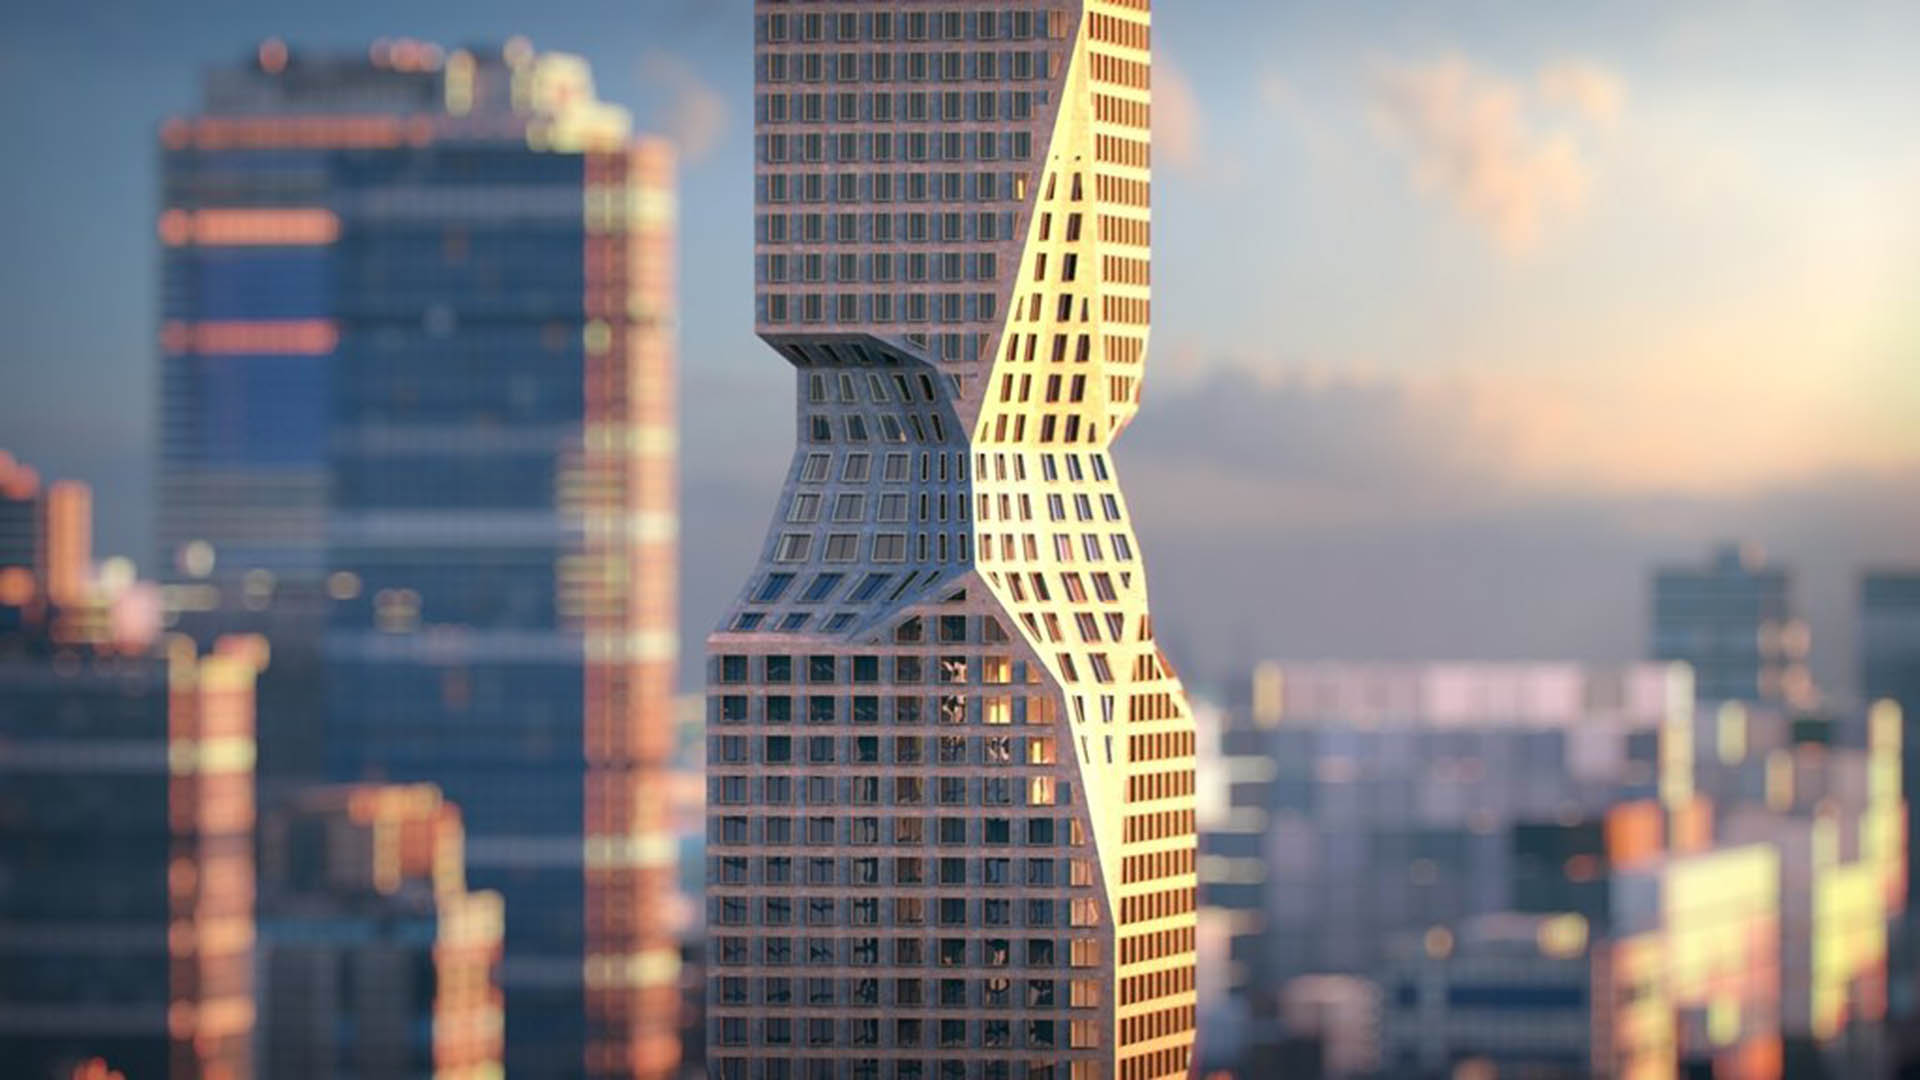 Skyler: An intergenerational residential tower for all ages